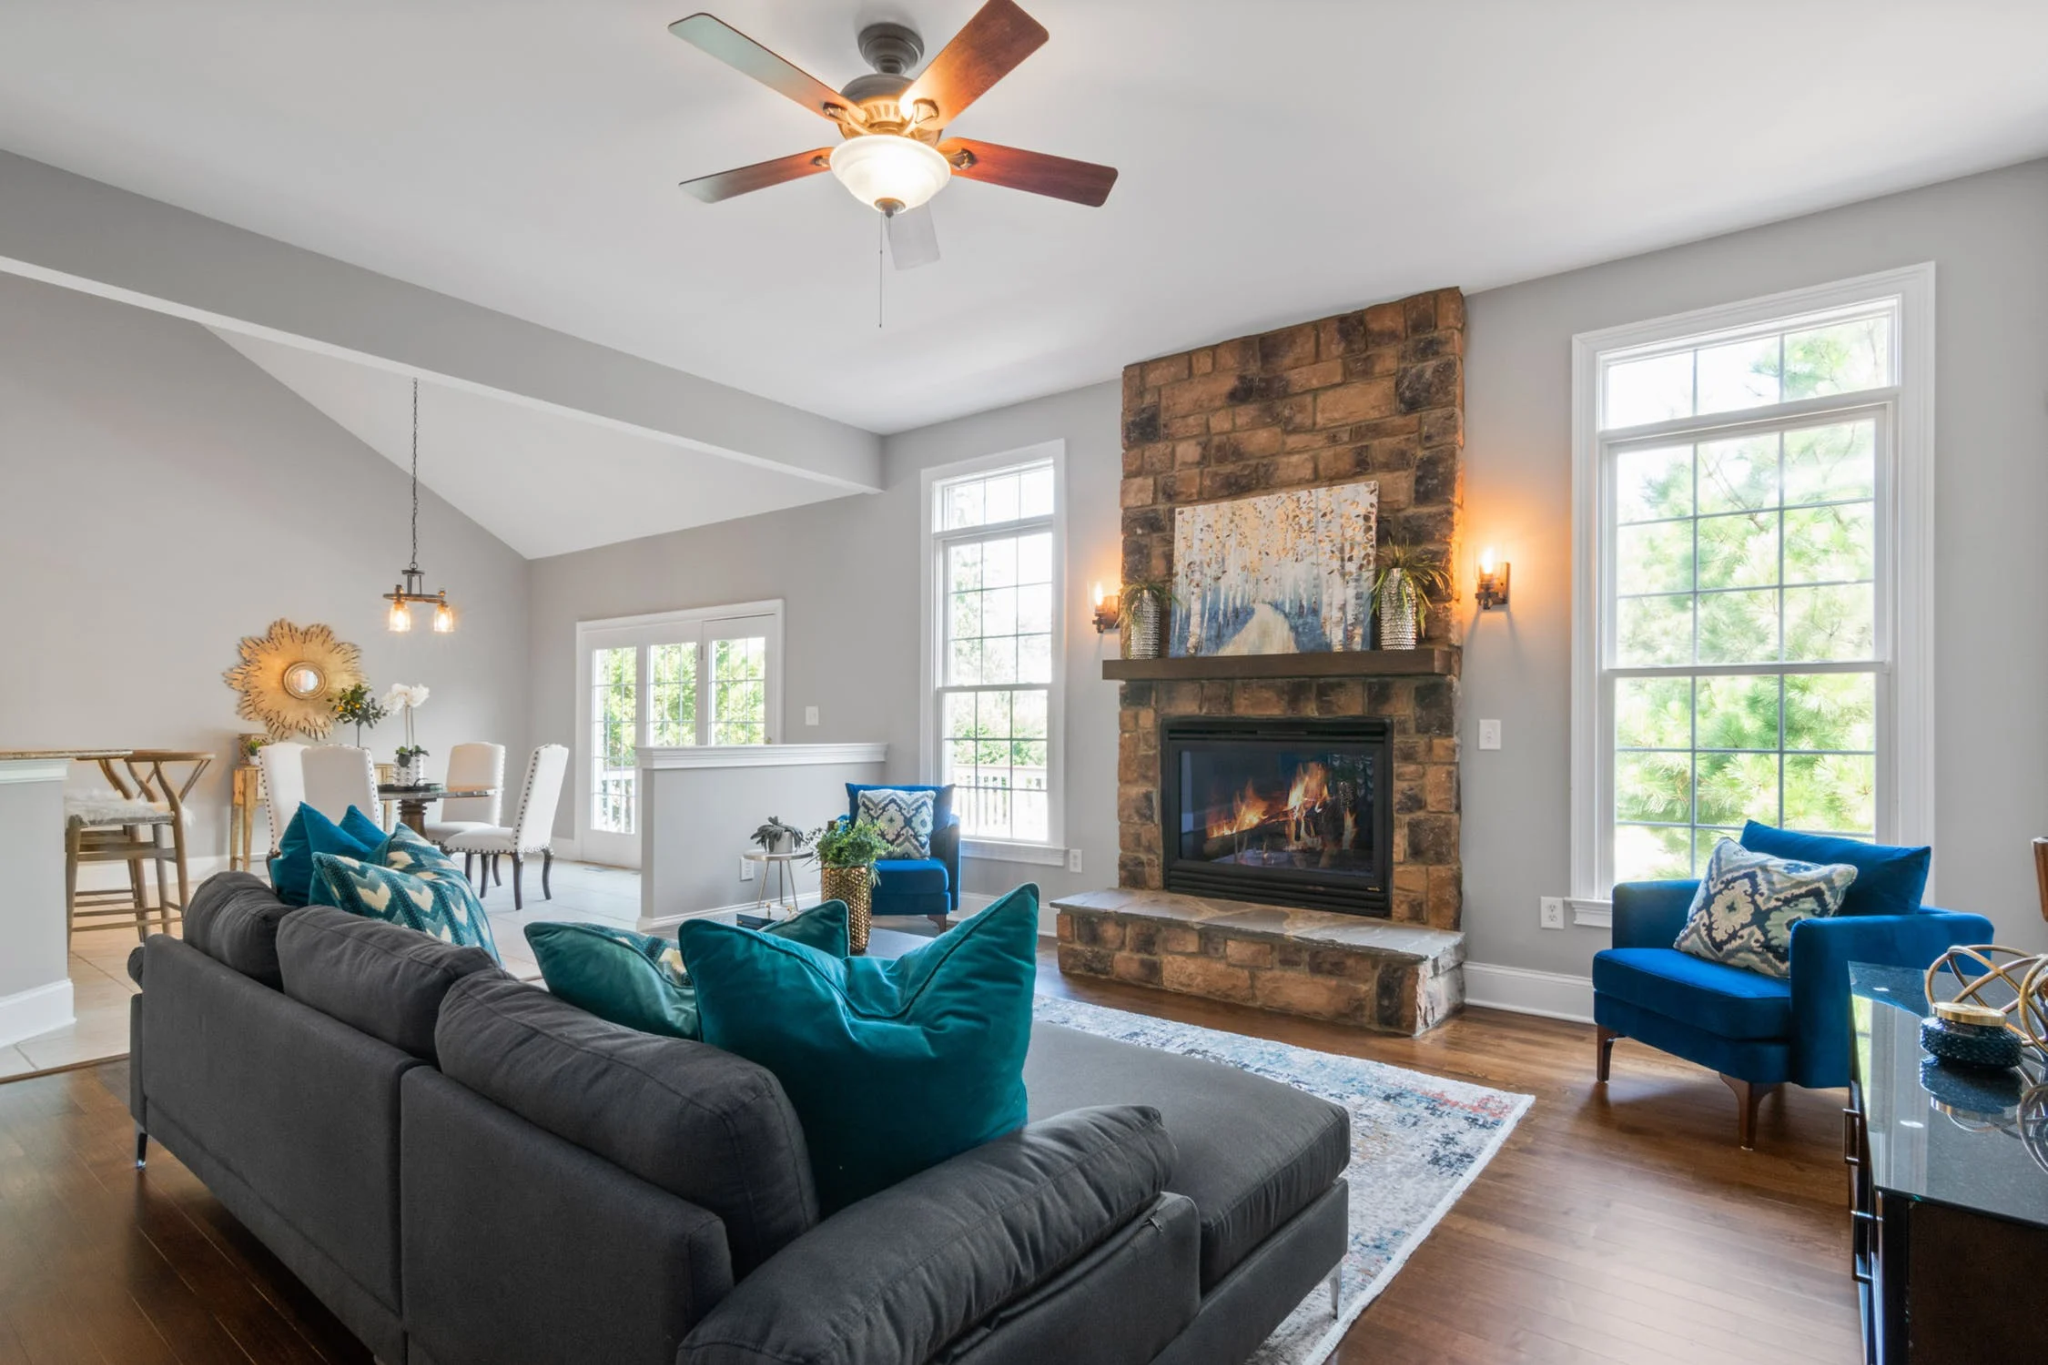 Contemporary living room with multiple light sources; interior decorating mistakes, MGSD